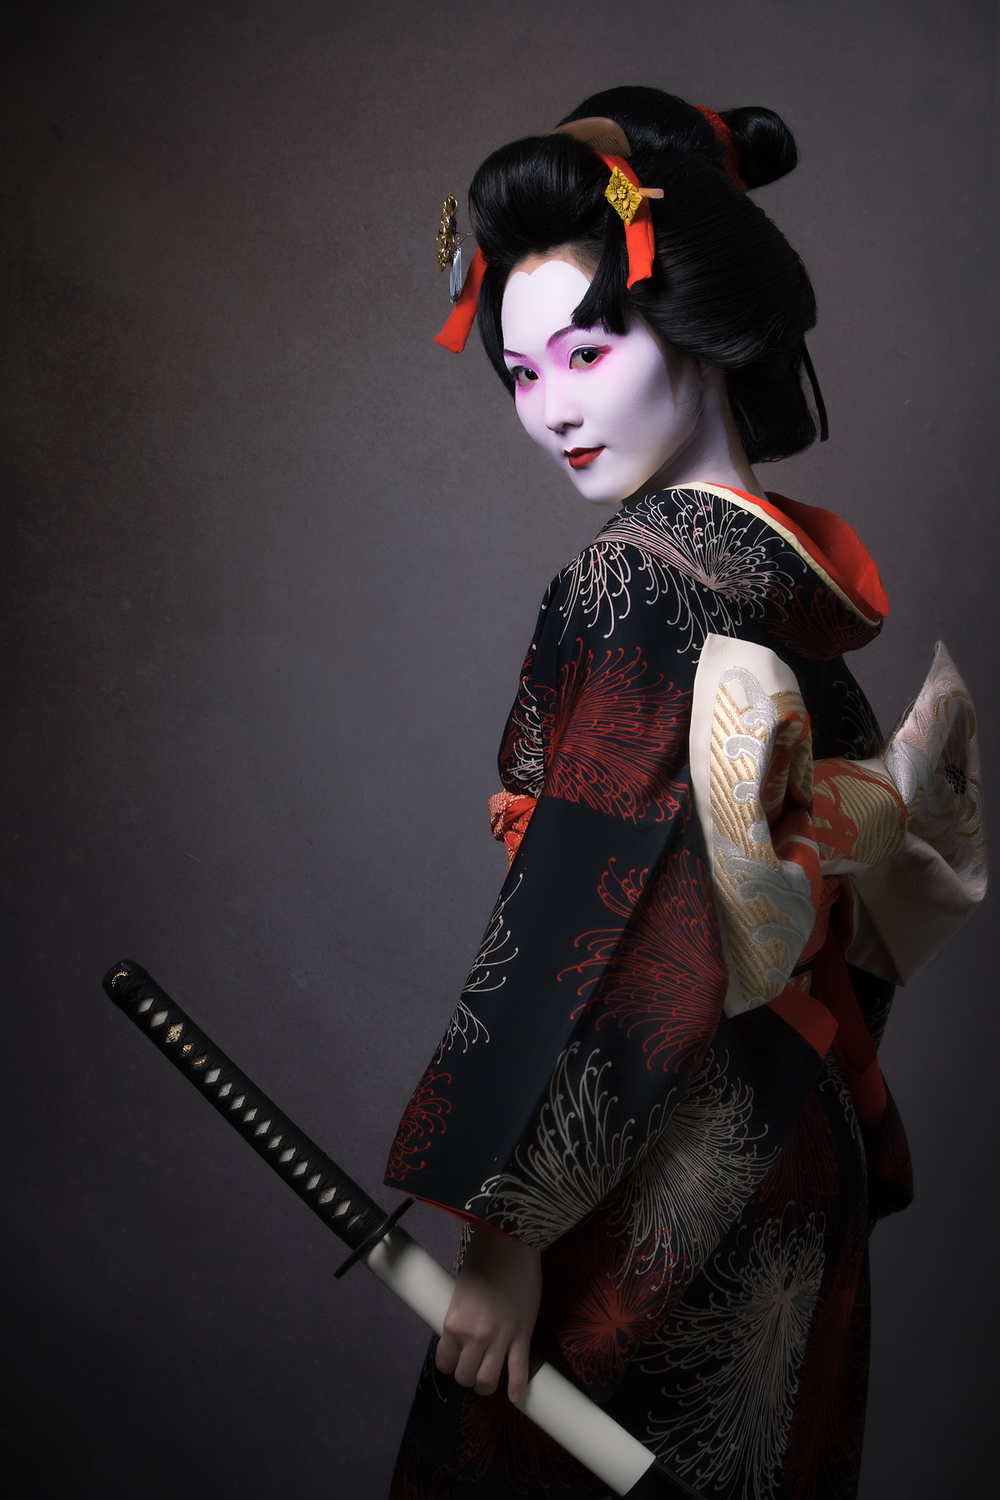 A beautiful geisha with a bbc mh 4